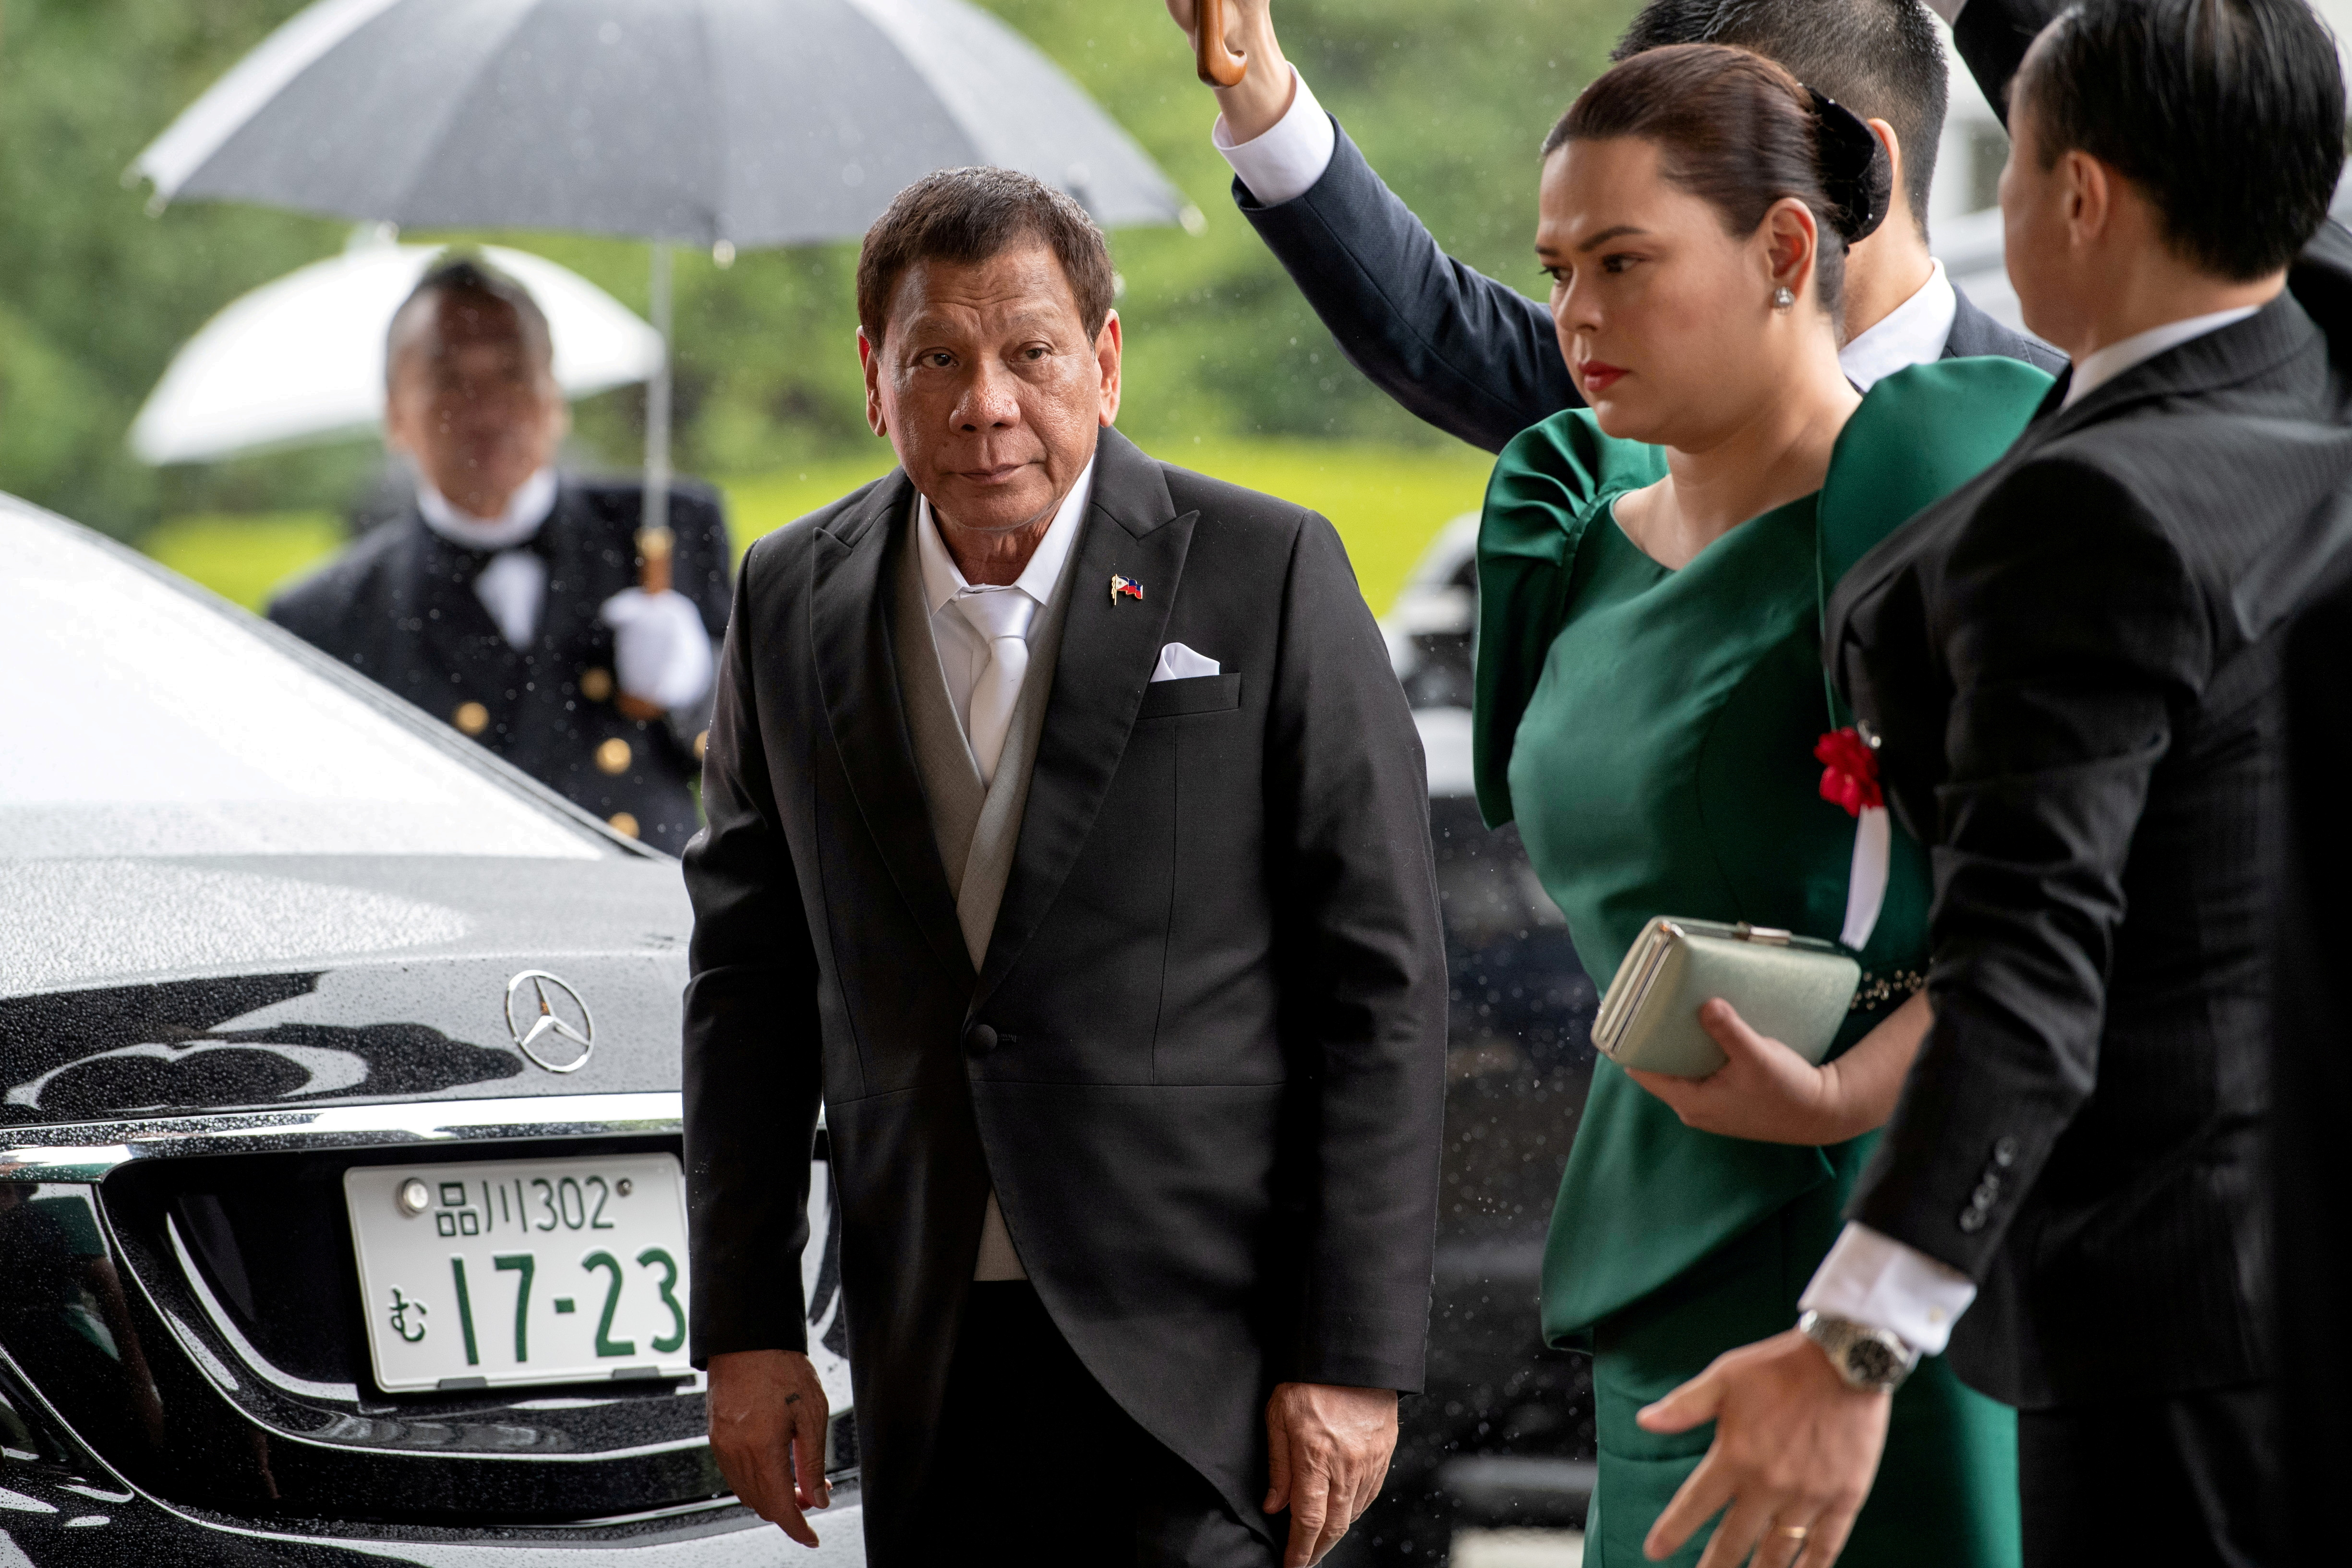 Philippines President Rodrigo Duterte arrives with daughter and first lady Sara Duterte-Carpio to attend the enthronement ceremony of Japan's Emperor Naruhito in Tokyo, Japan October 22, 2019.  Carl Court/Pool via REUTERS